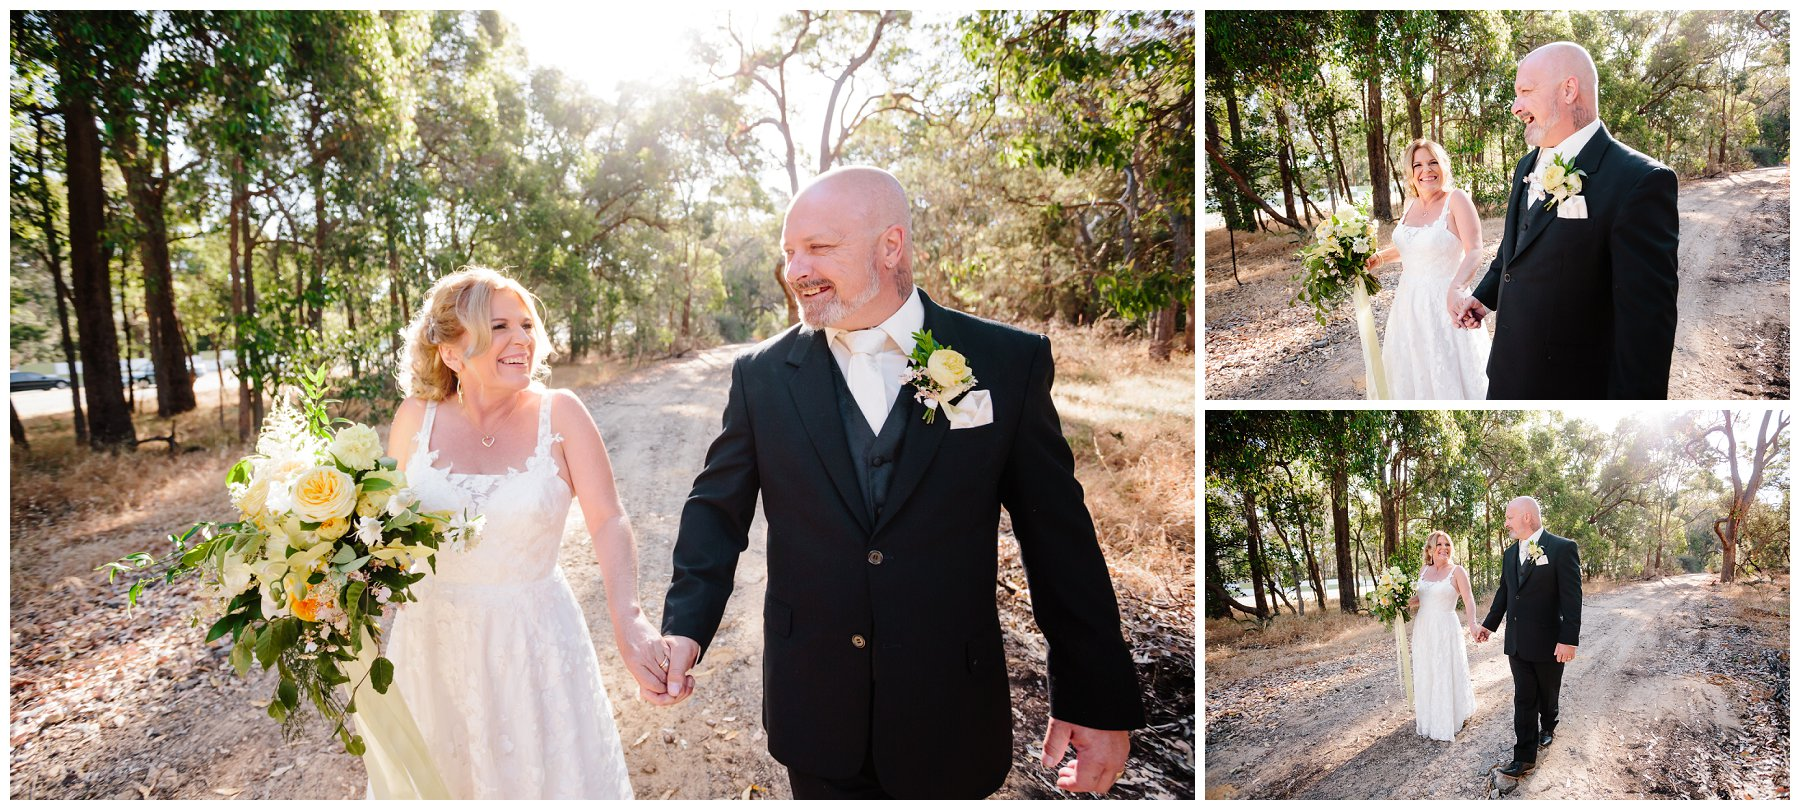 bushland wedding photo